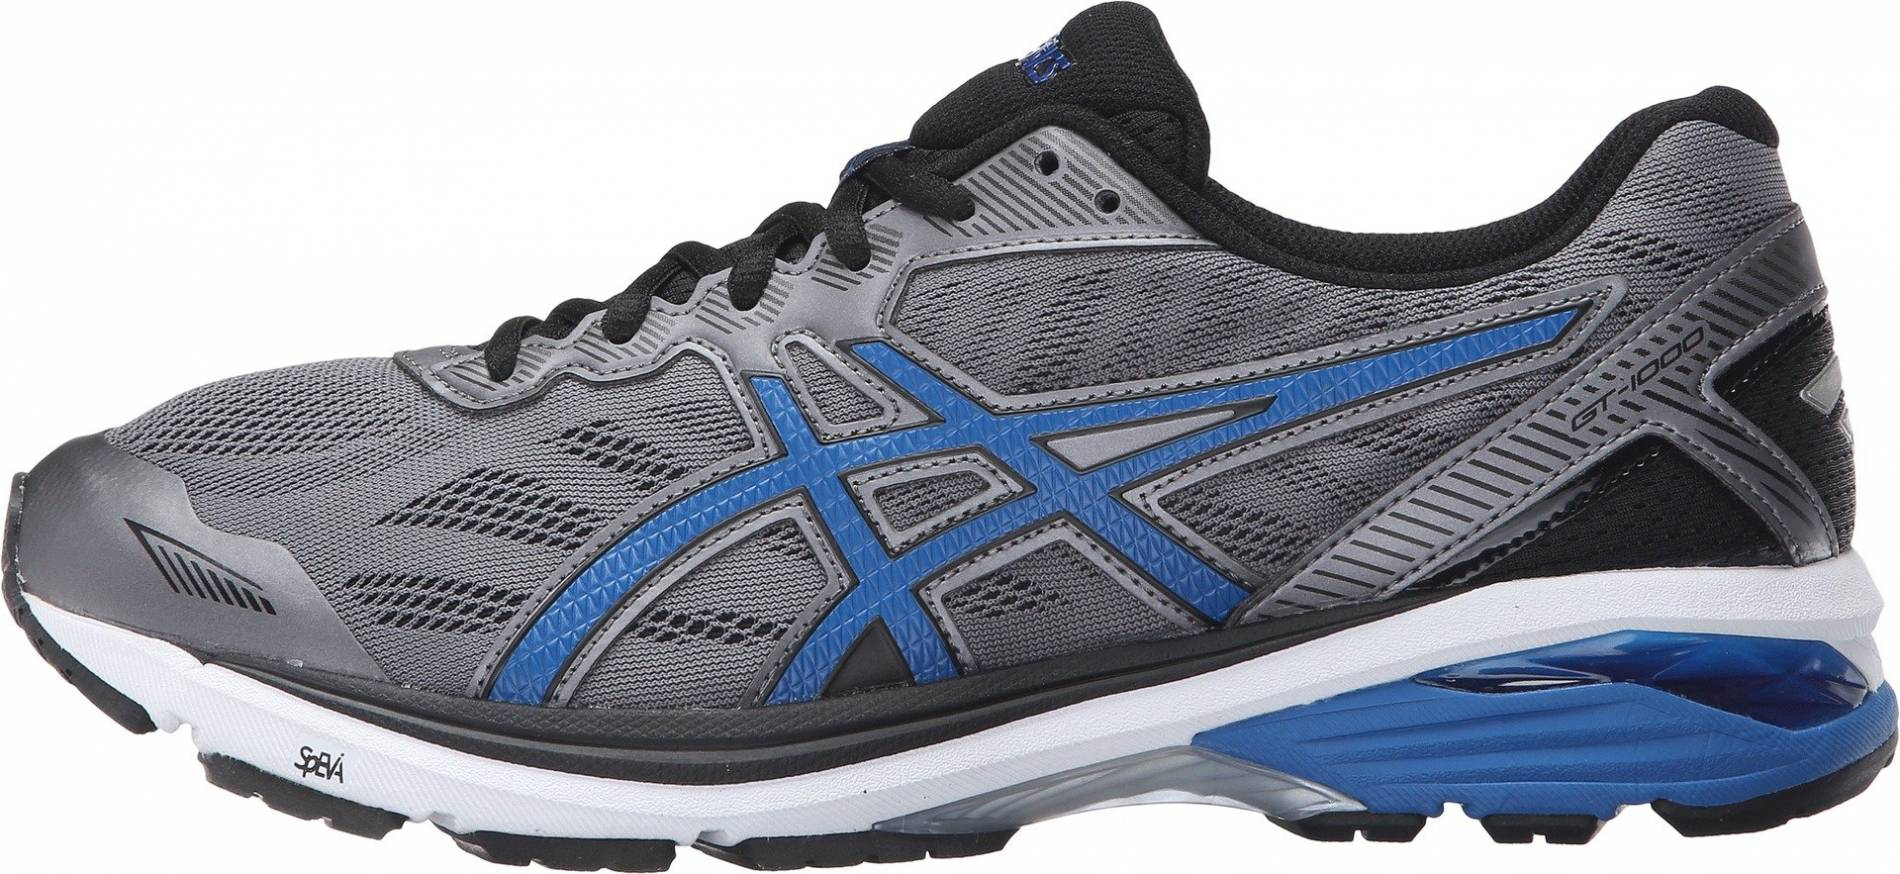 Only $80 + Review of Asics GT 1000 5